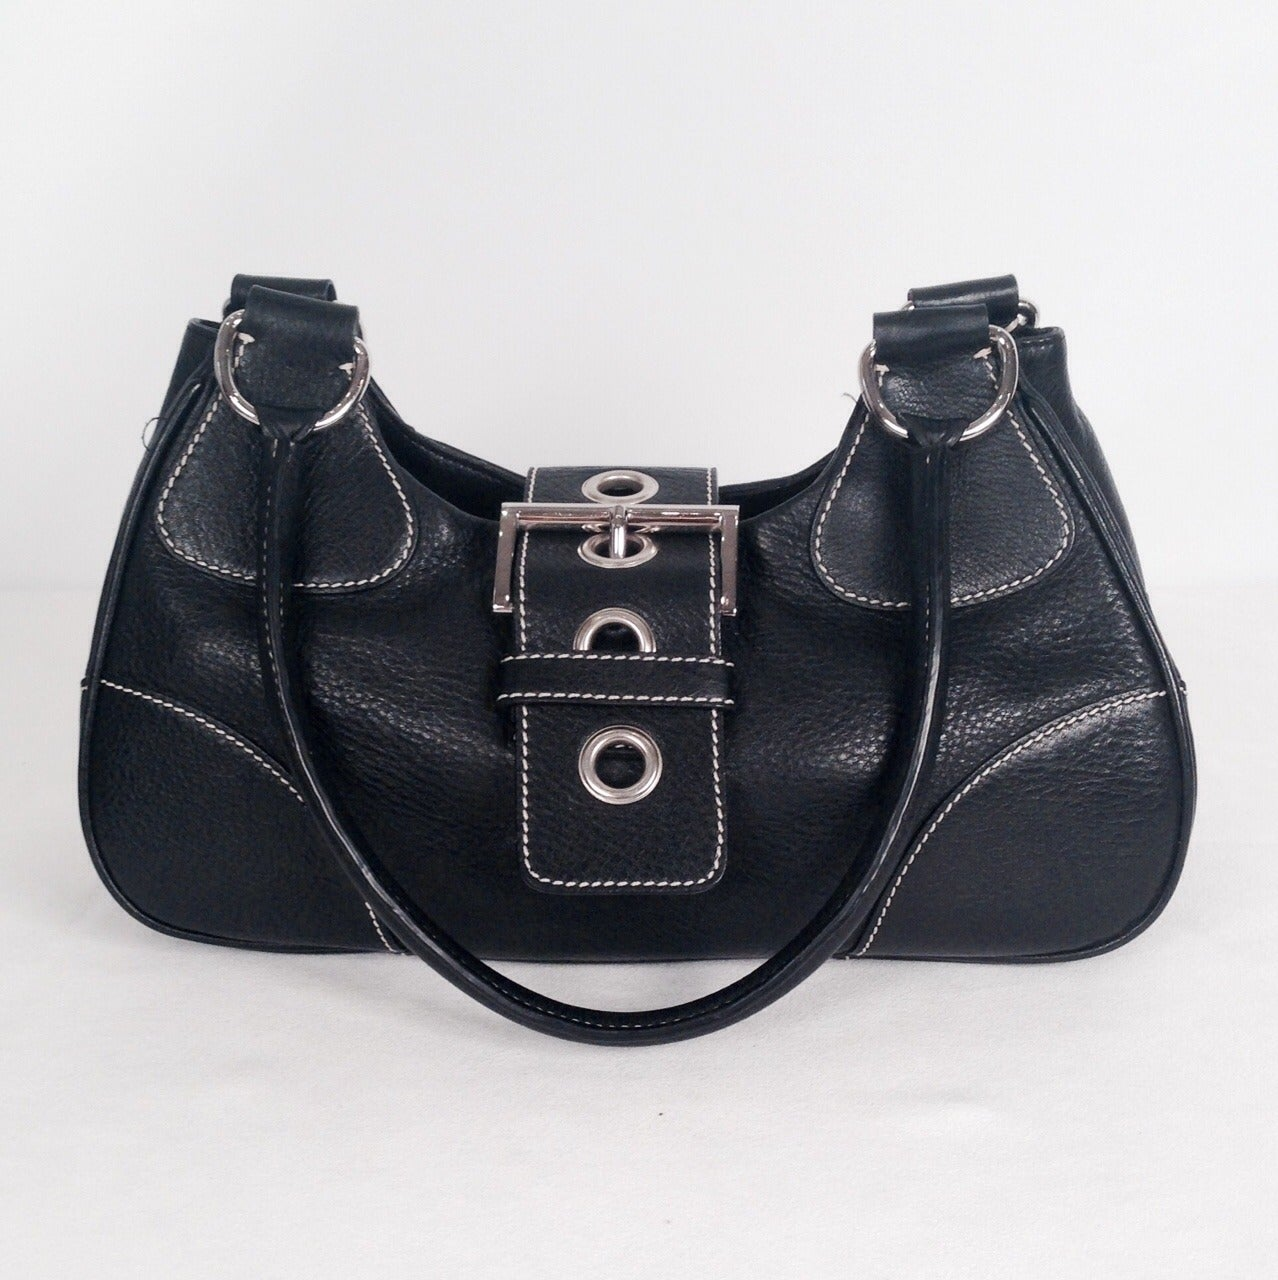 Black Prada Daino Box Nero Shoulder Handbag For